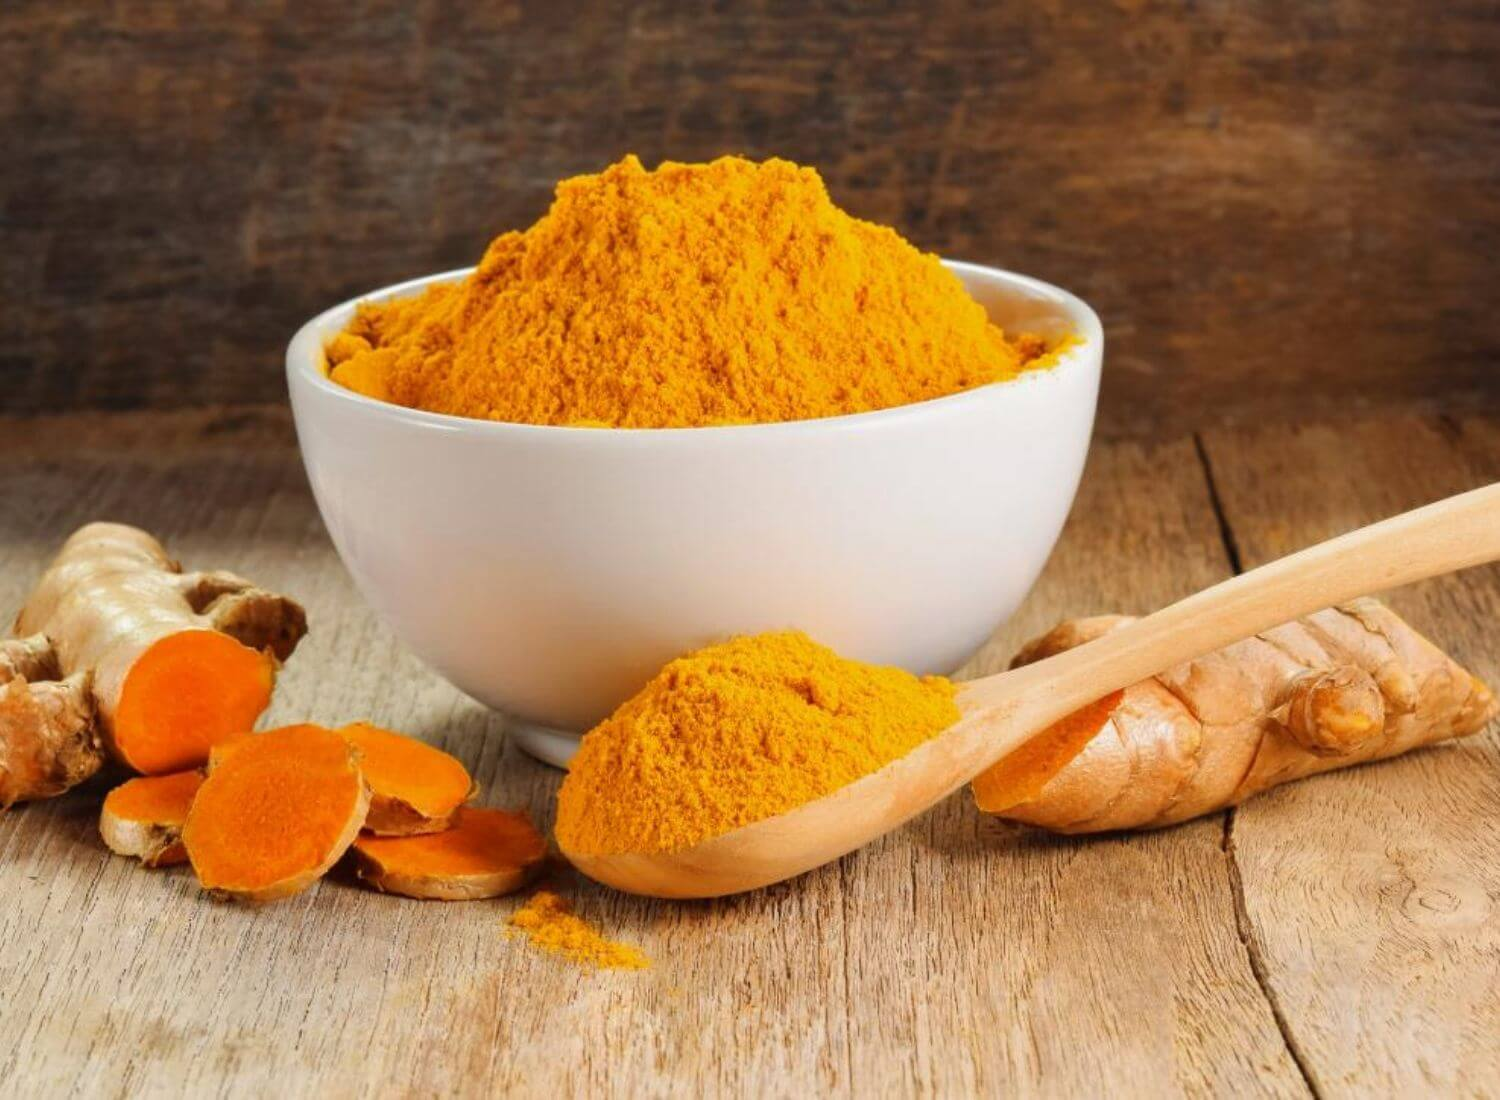 Top 15 Benefits Of Turmeric That Help You Stay Healthy